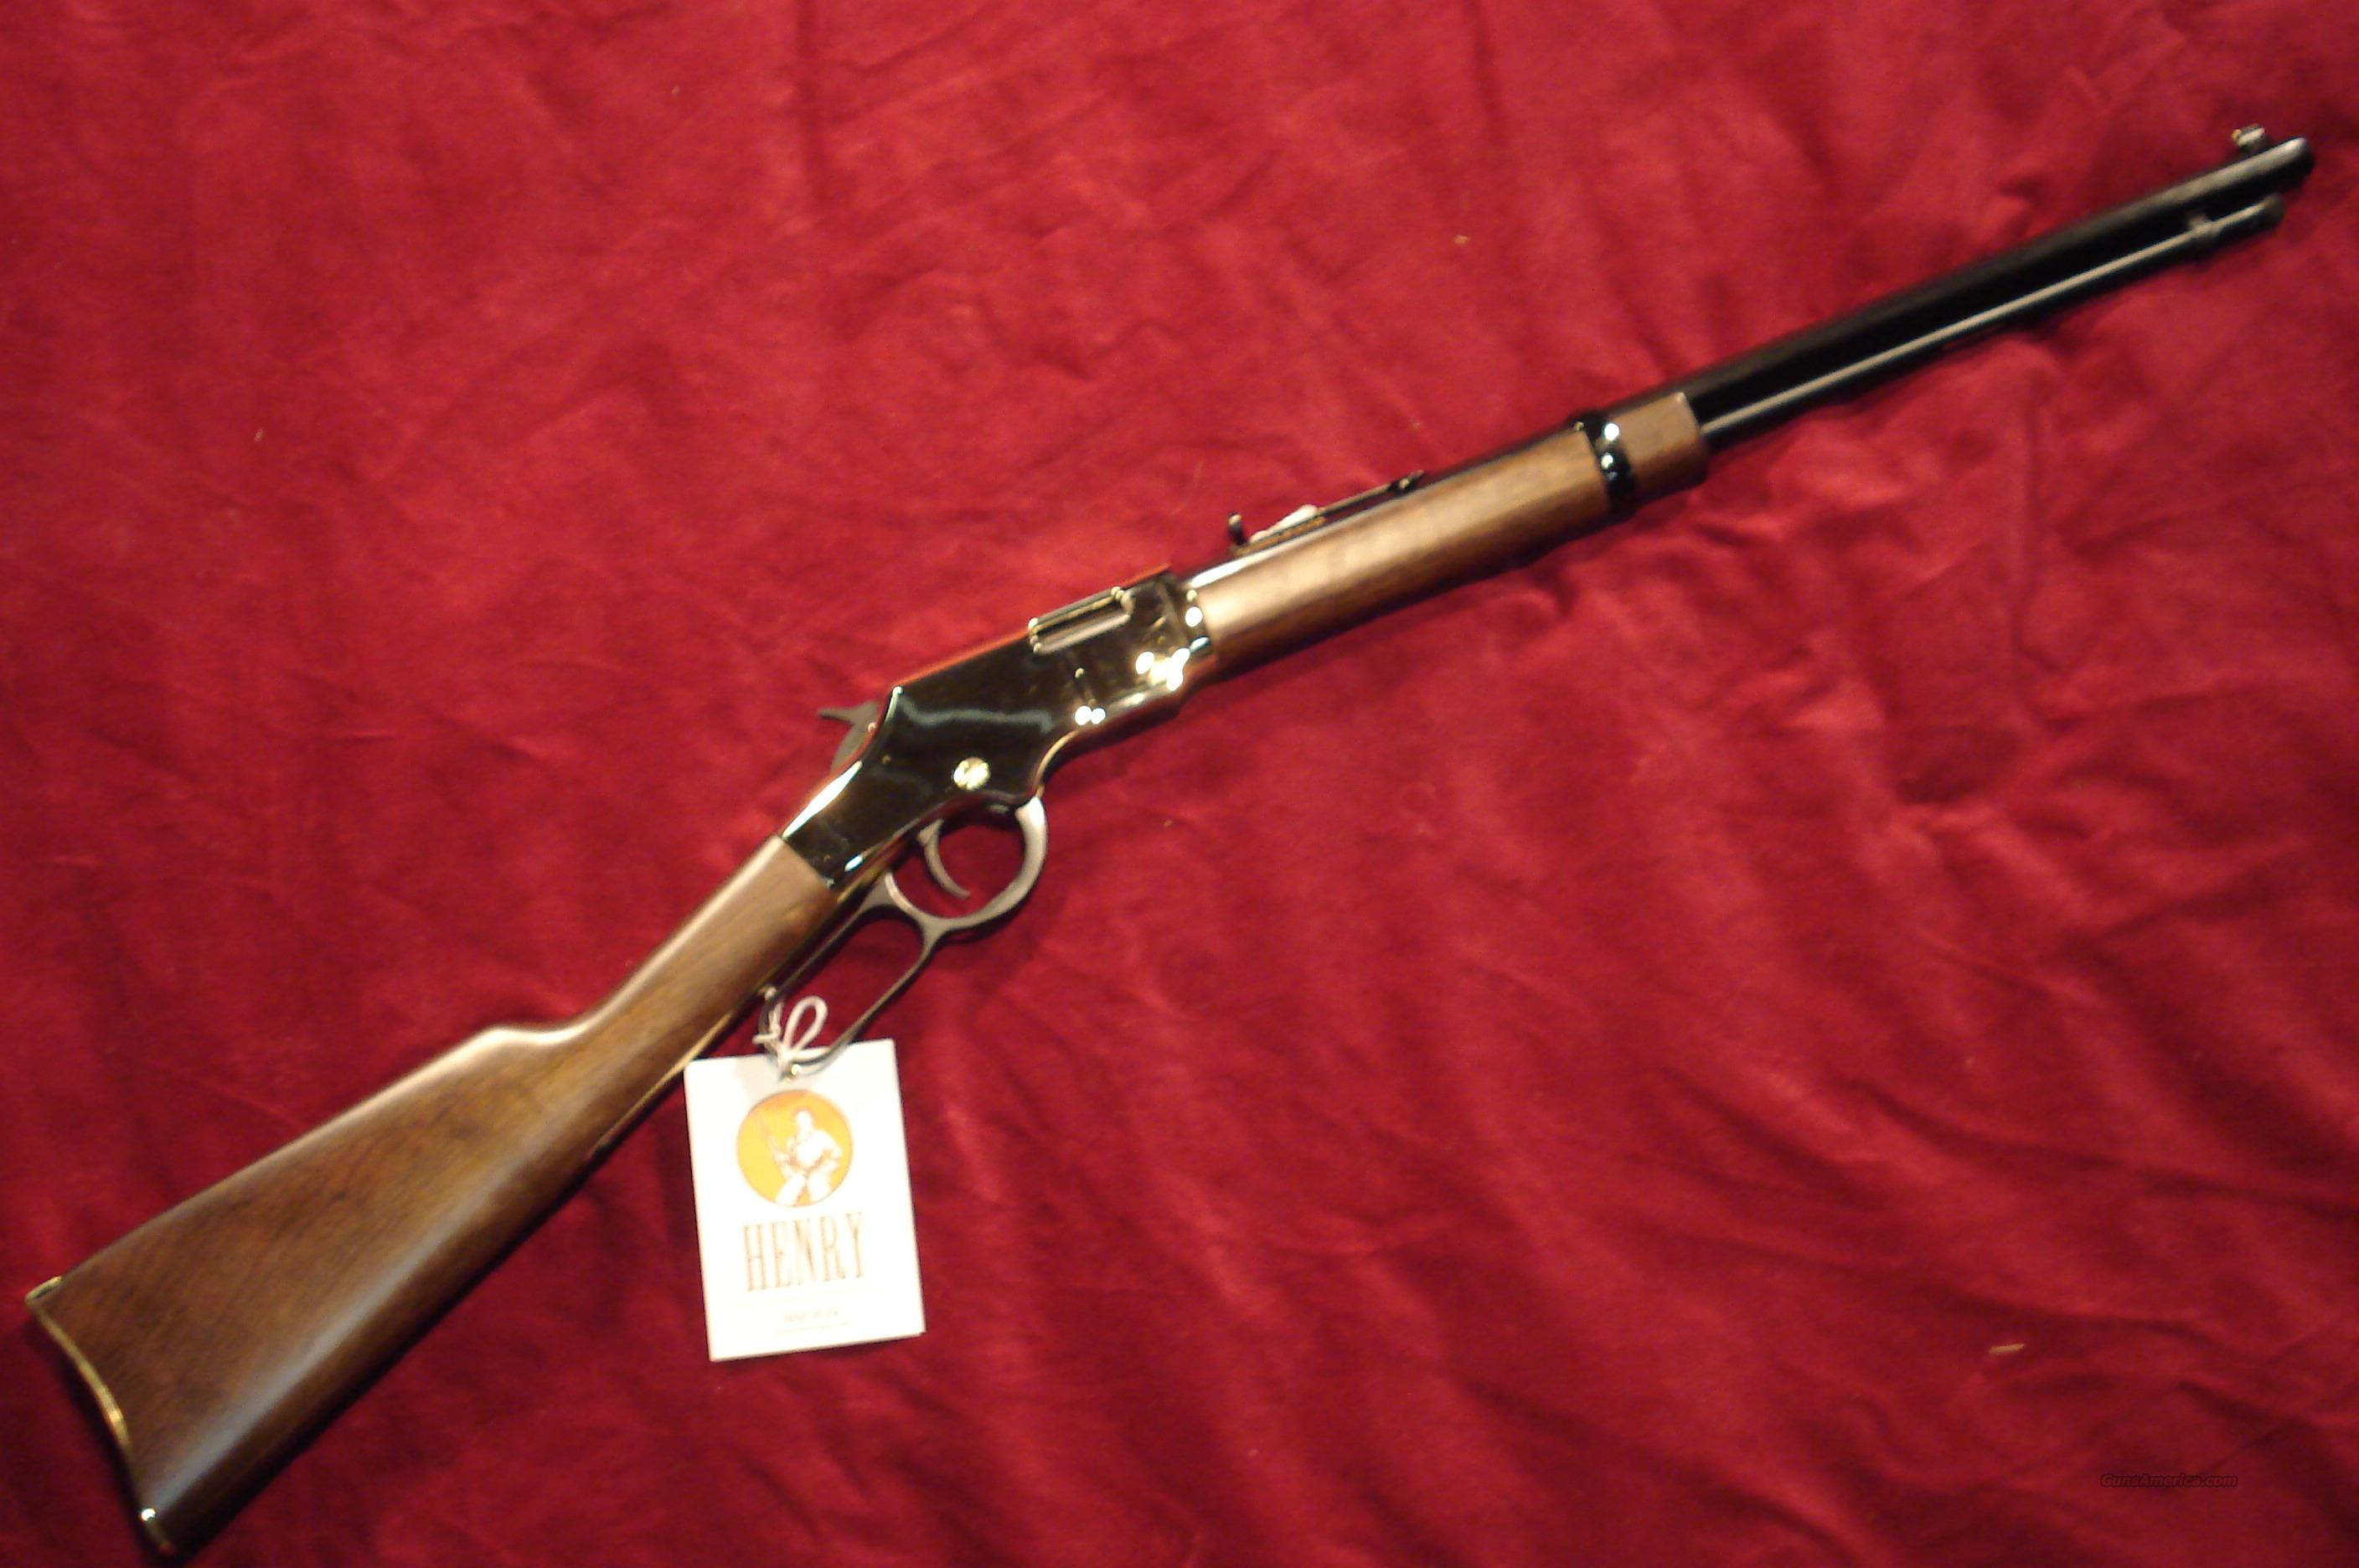 HENRY GOLDEN BOY 22CAL NEW  Guns > Rifles > Henry Rifle Company